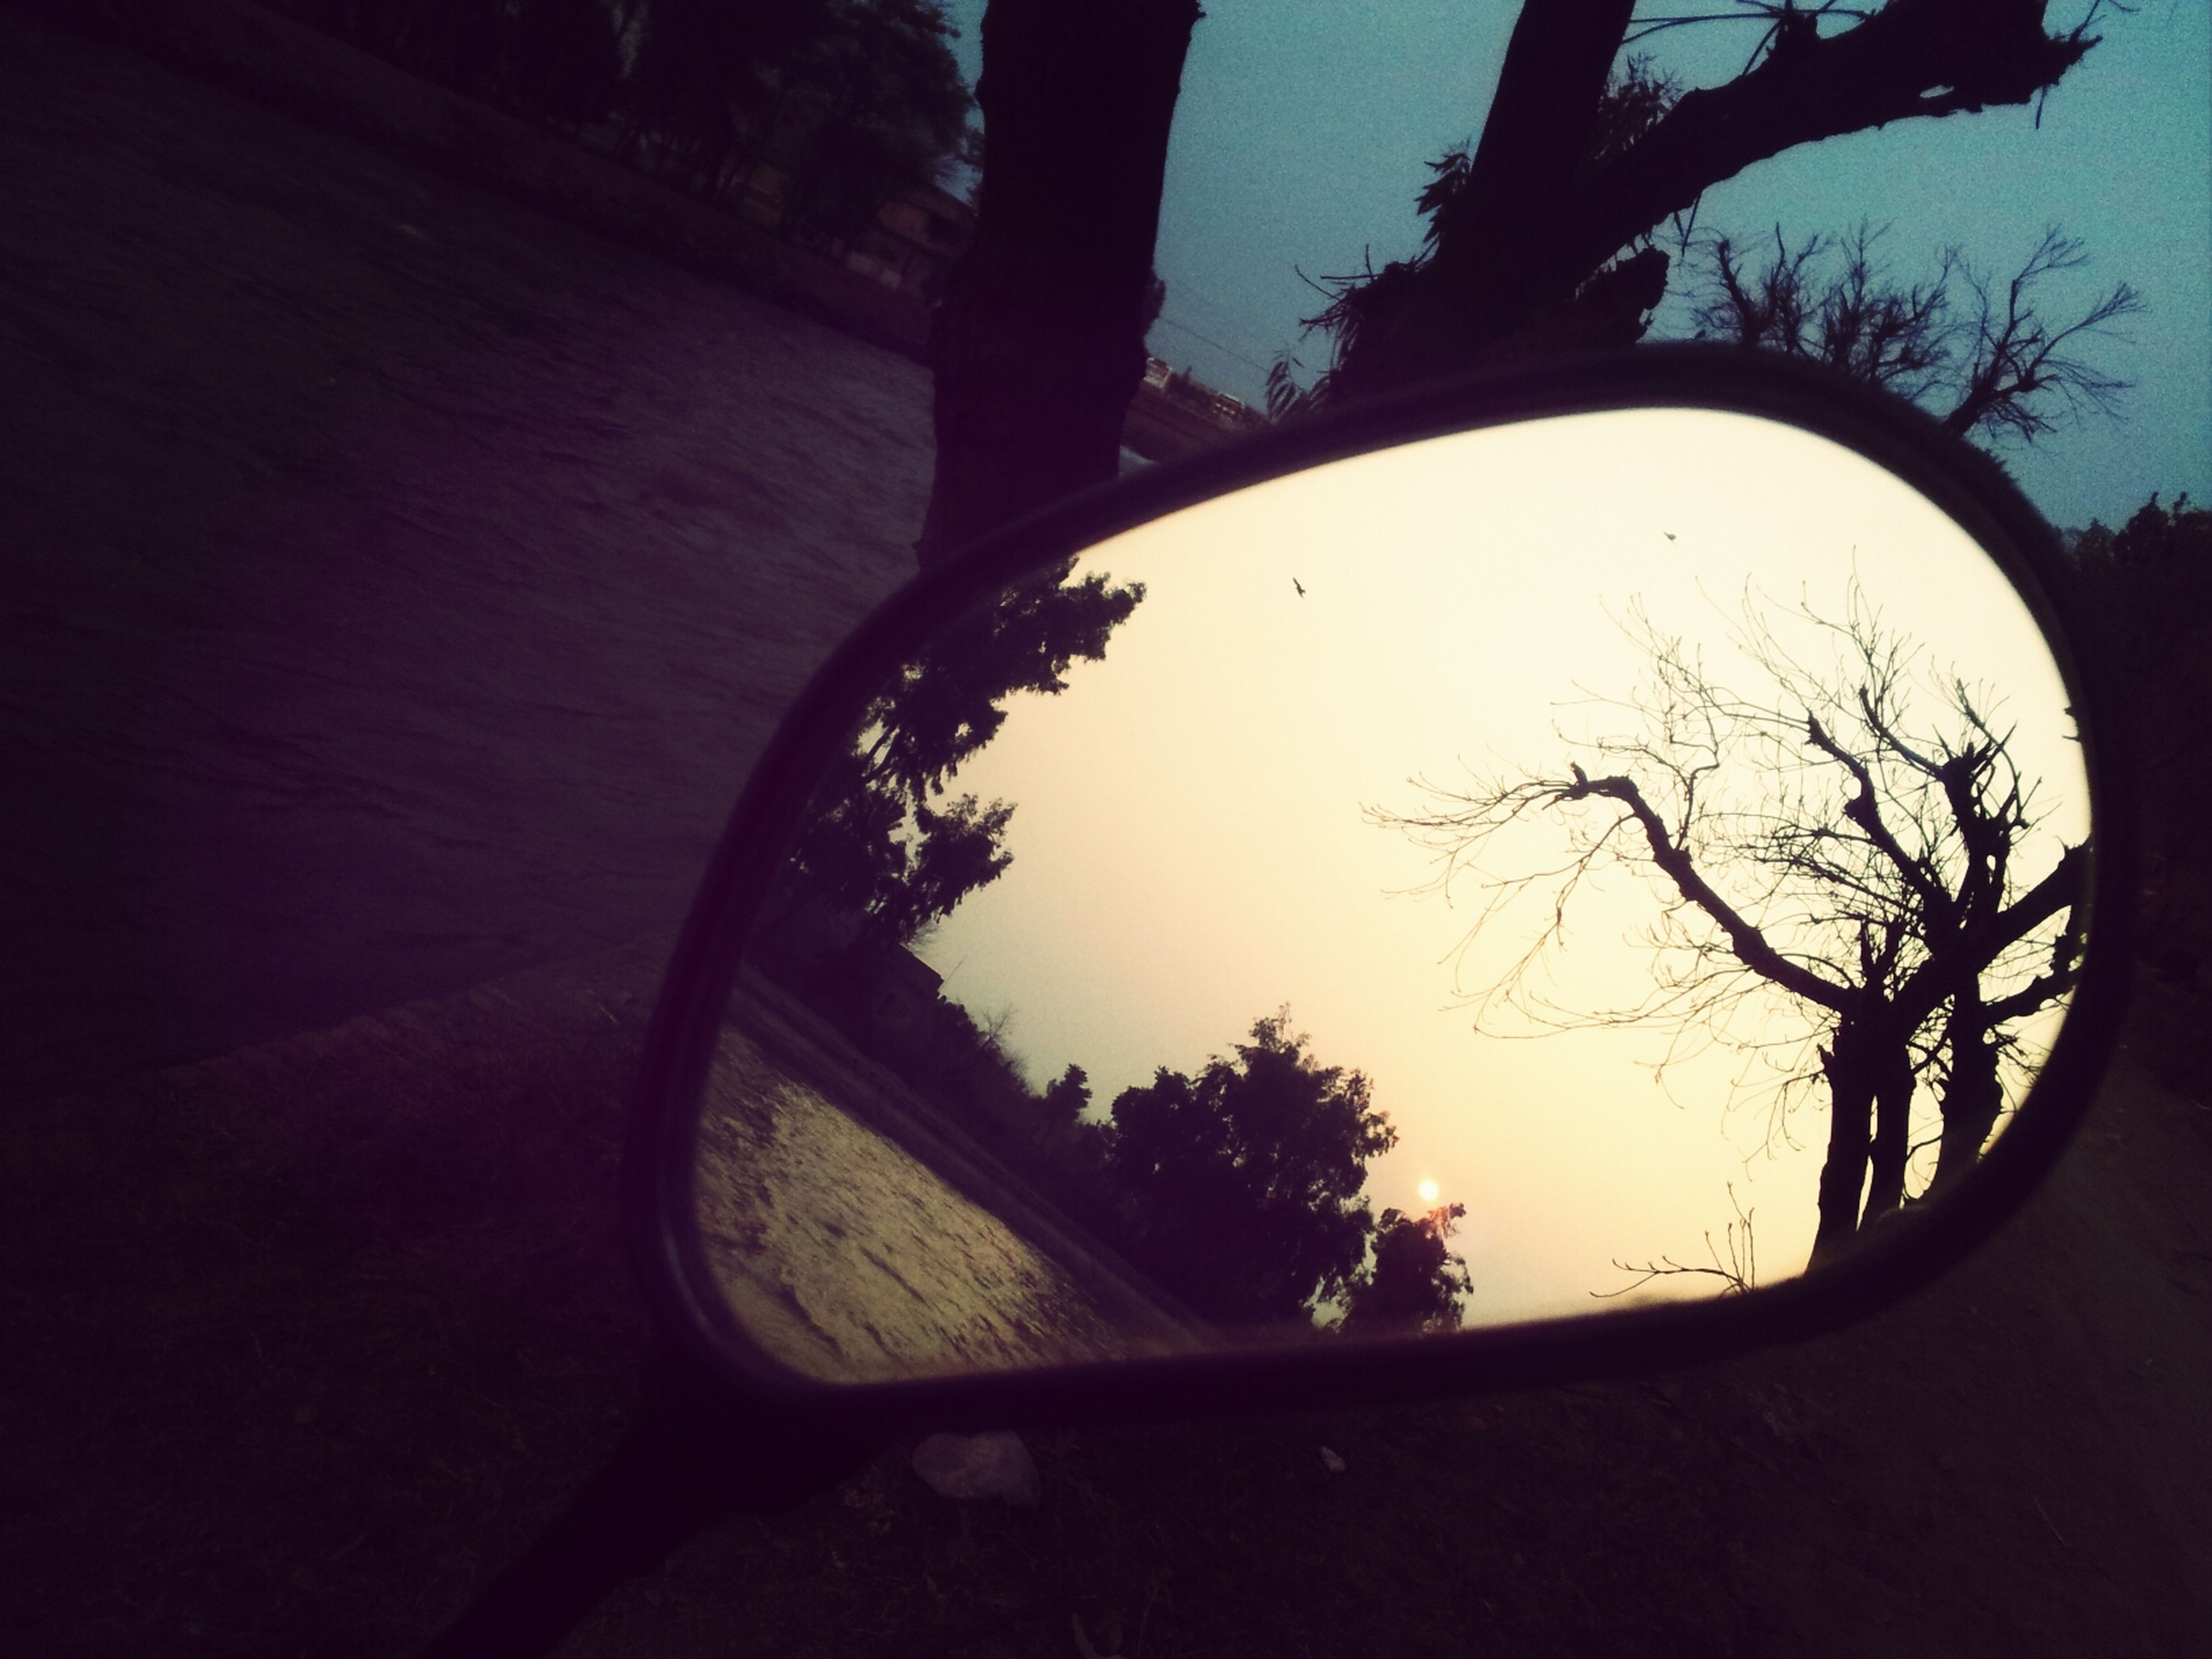 tree, silhouette, sky, transportation, circle, reflection, sunset, branch, bare tree, nature, mode of transport, land vehicle, side-view mirror, tranquility, outdoors, no people, tranquil scene, road, beauty in nature, car